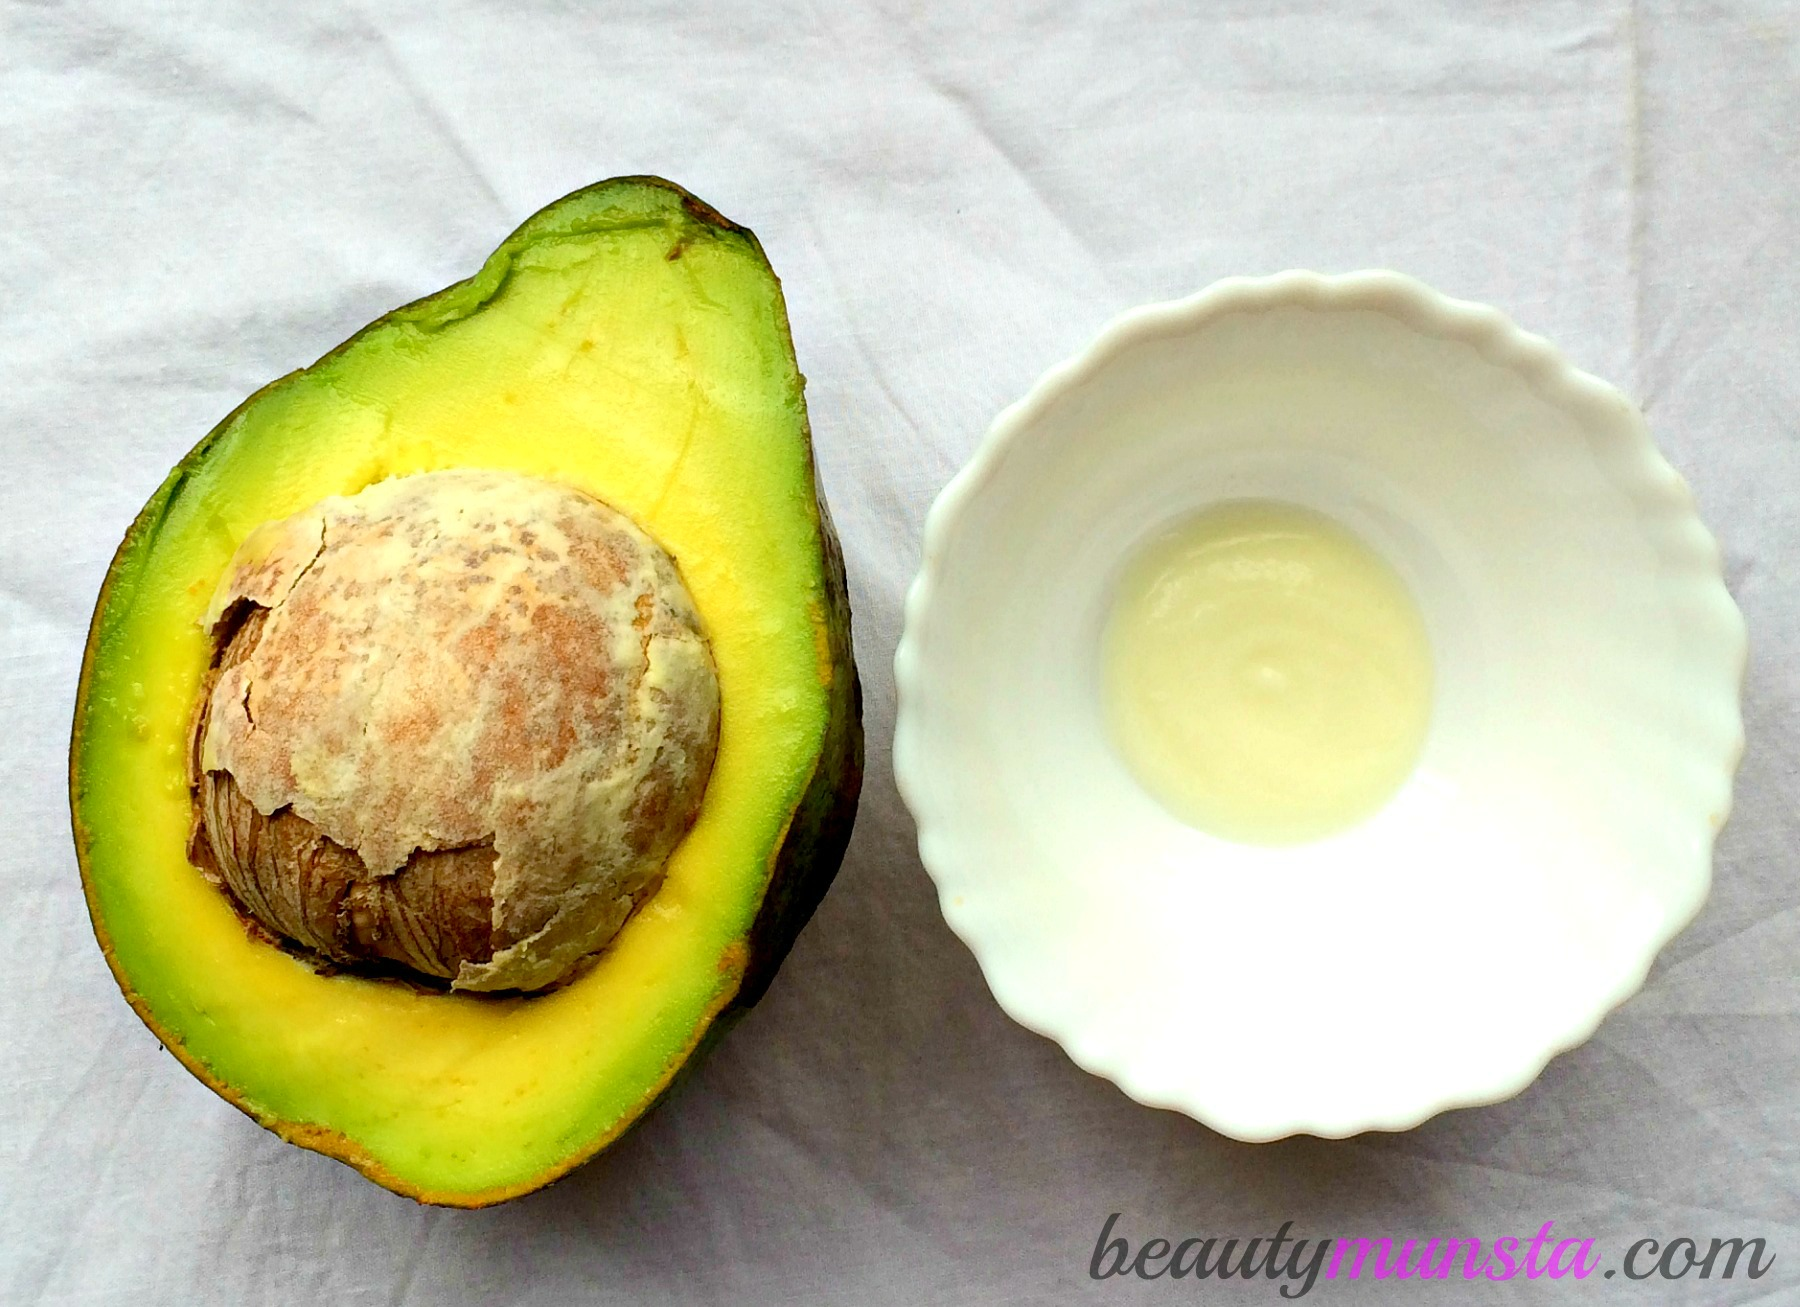 You will need just two ingredients - avocado & greek yogurt, to deeply hydrate and moisturize your skin